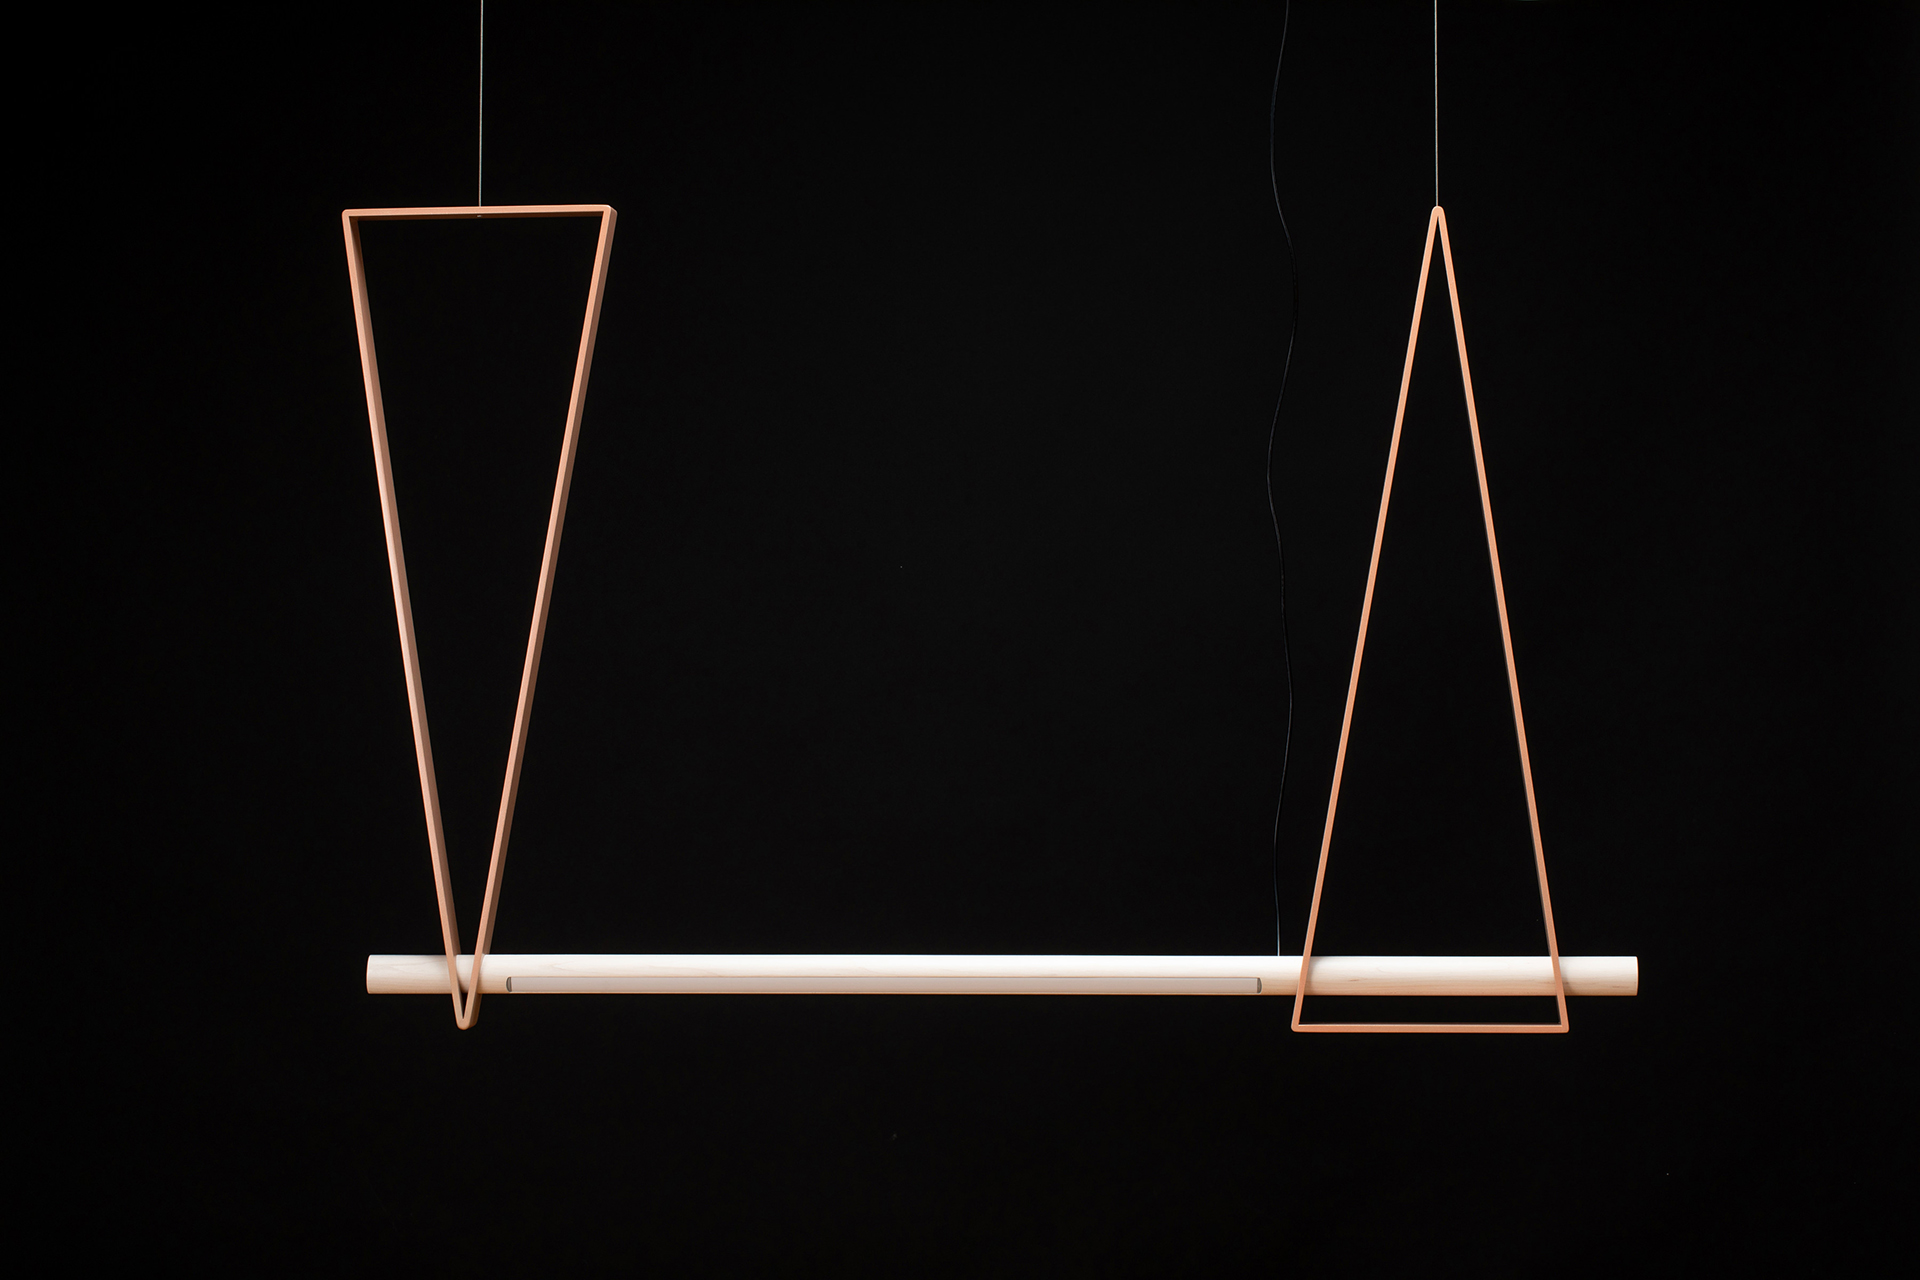 Circadian Lighting and Geometry by Atelier Stōbben